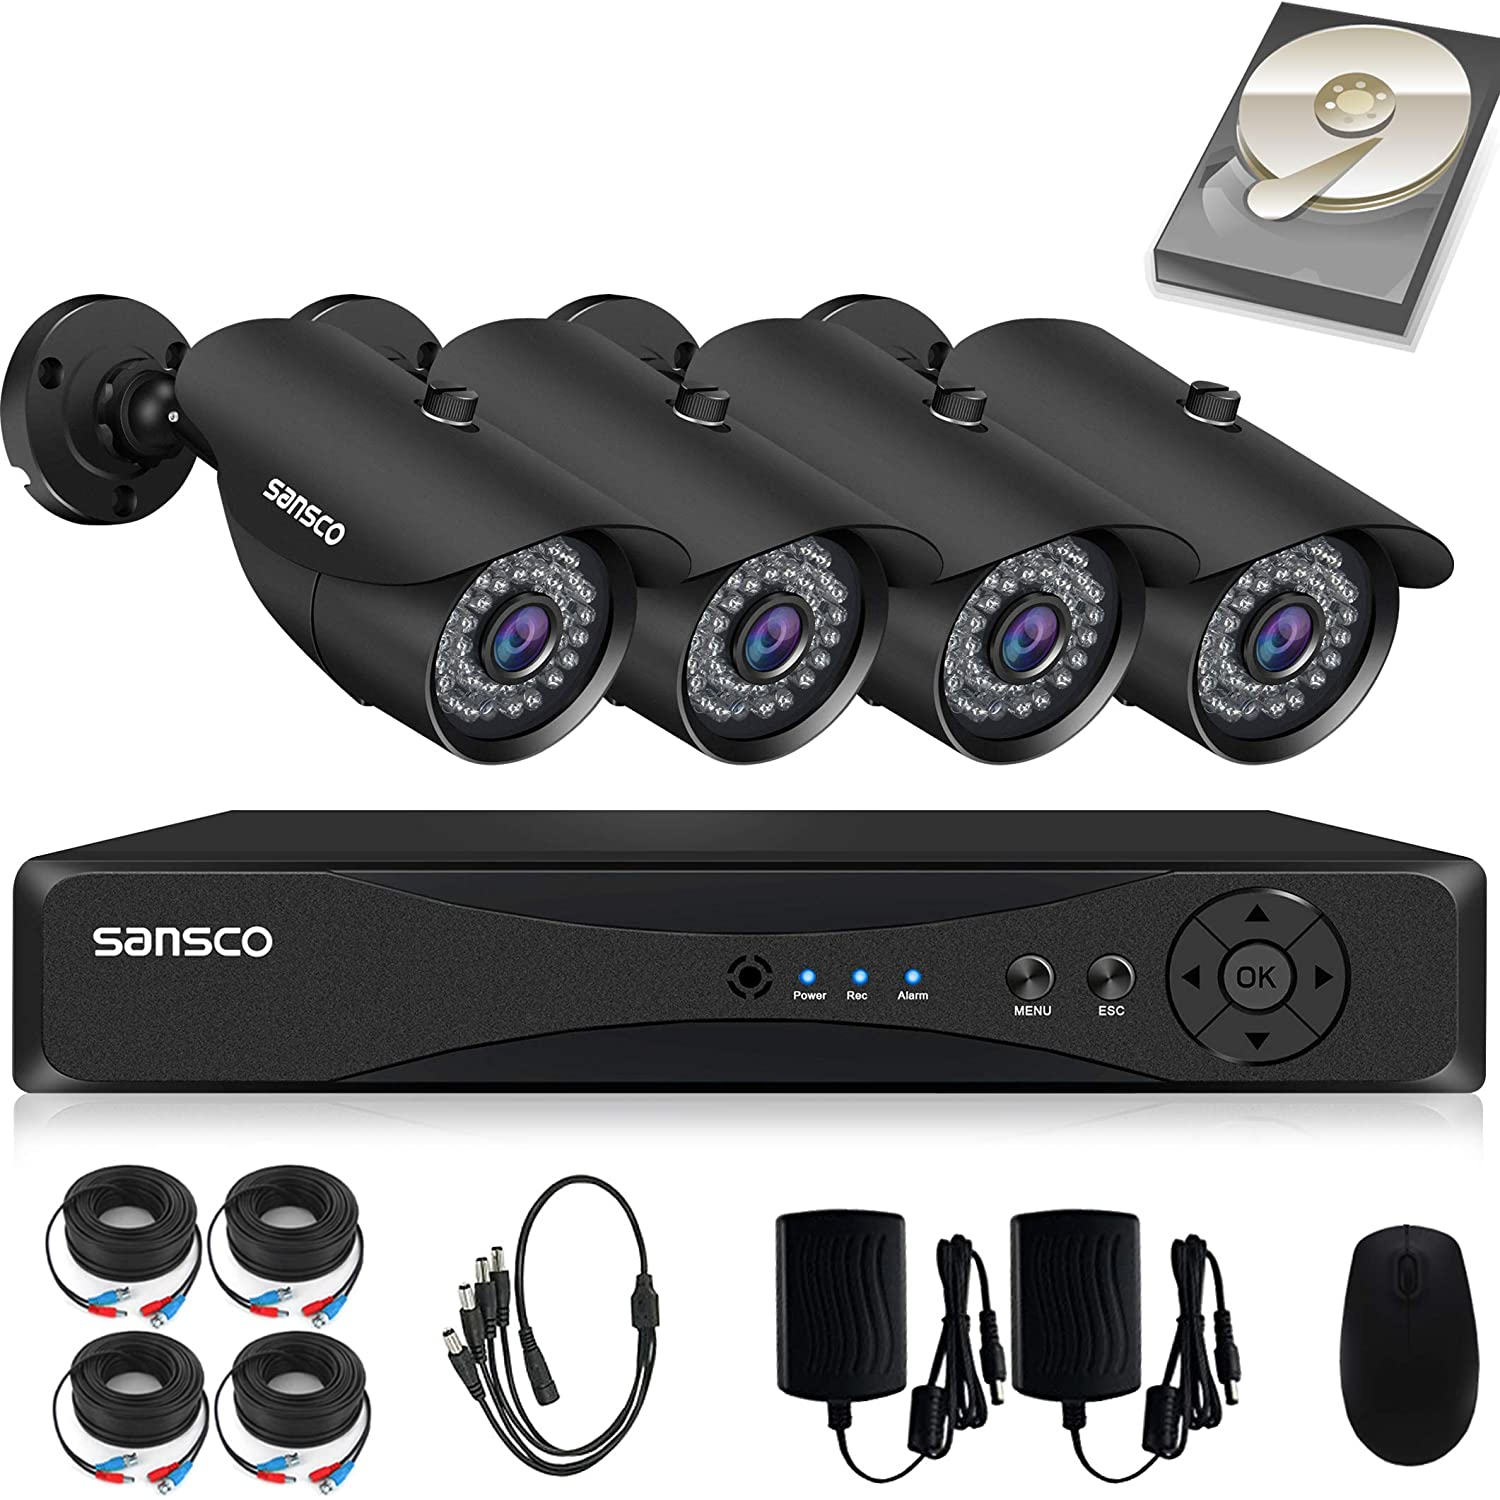 SANSCO Pro CCTV Security Camera System with FHD 1080P DVR, 4 Bullet Cameras (All HD 1080p 2MP), 1TB Internal Hard Drive Disk 24/7 Or Motion Recording ...